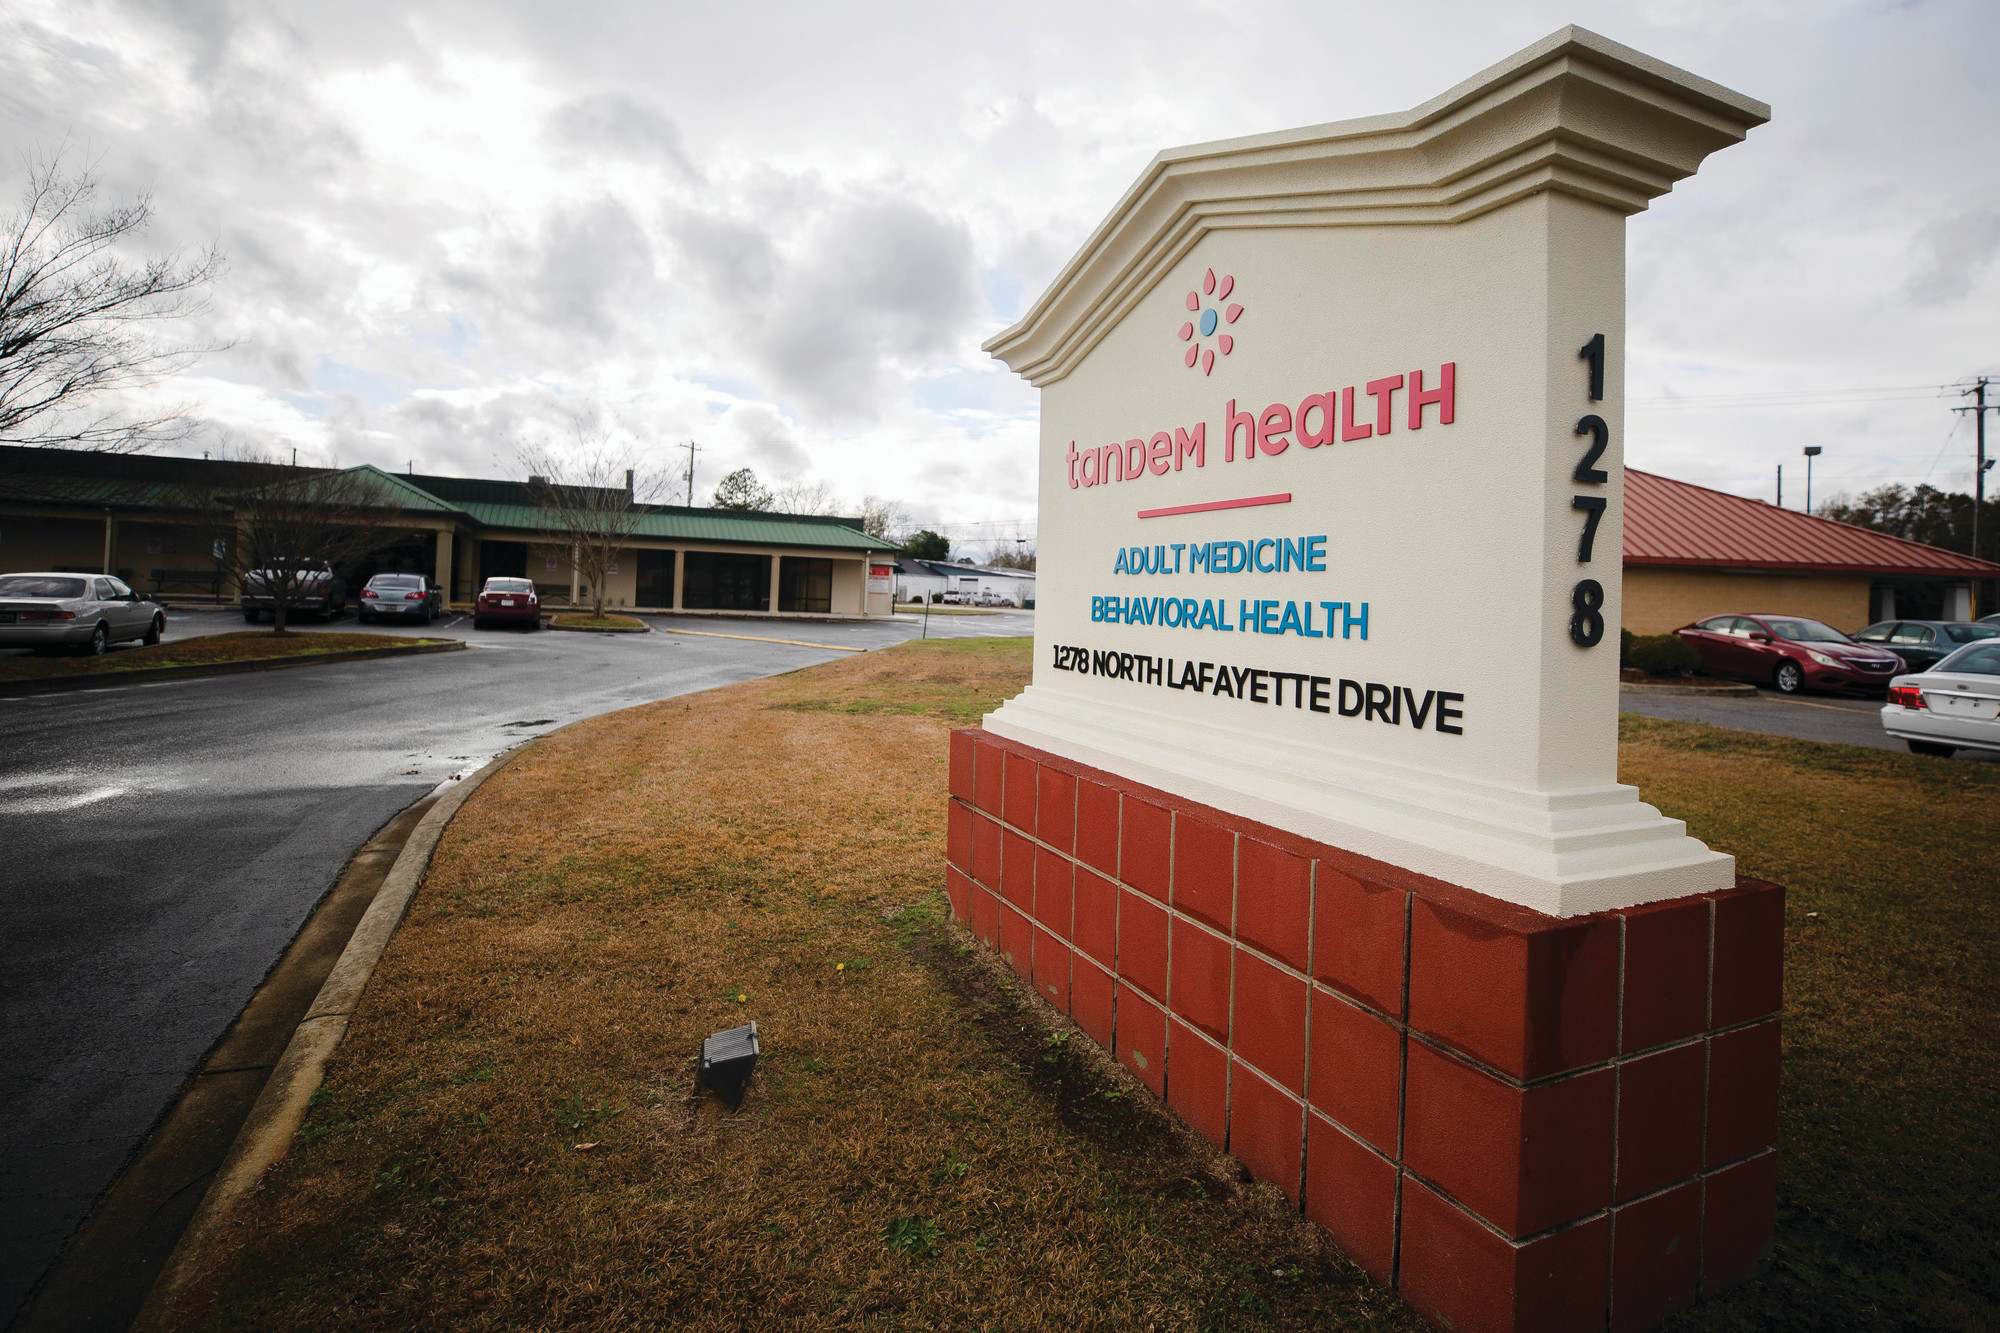 Bettering Care As Sumter Family Health Center Becomes Tandem Health The Sumter Item